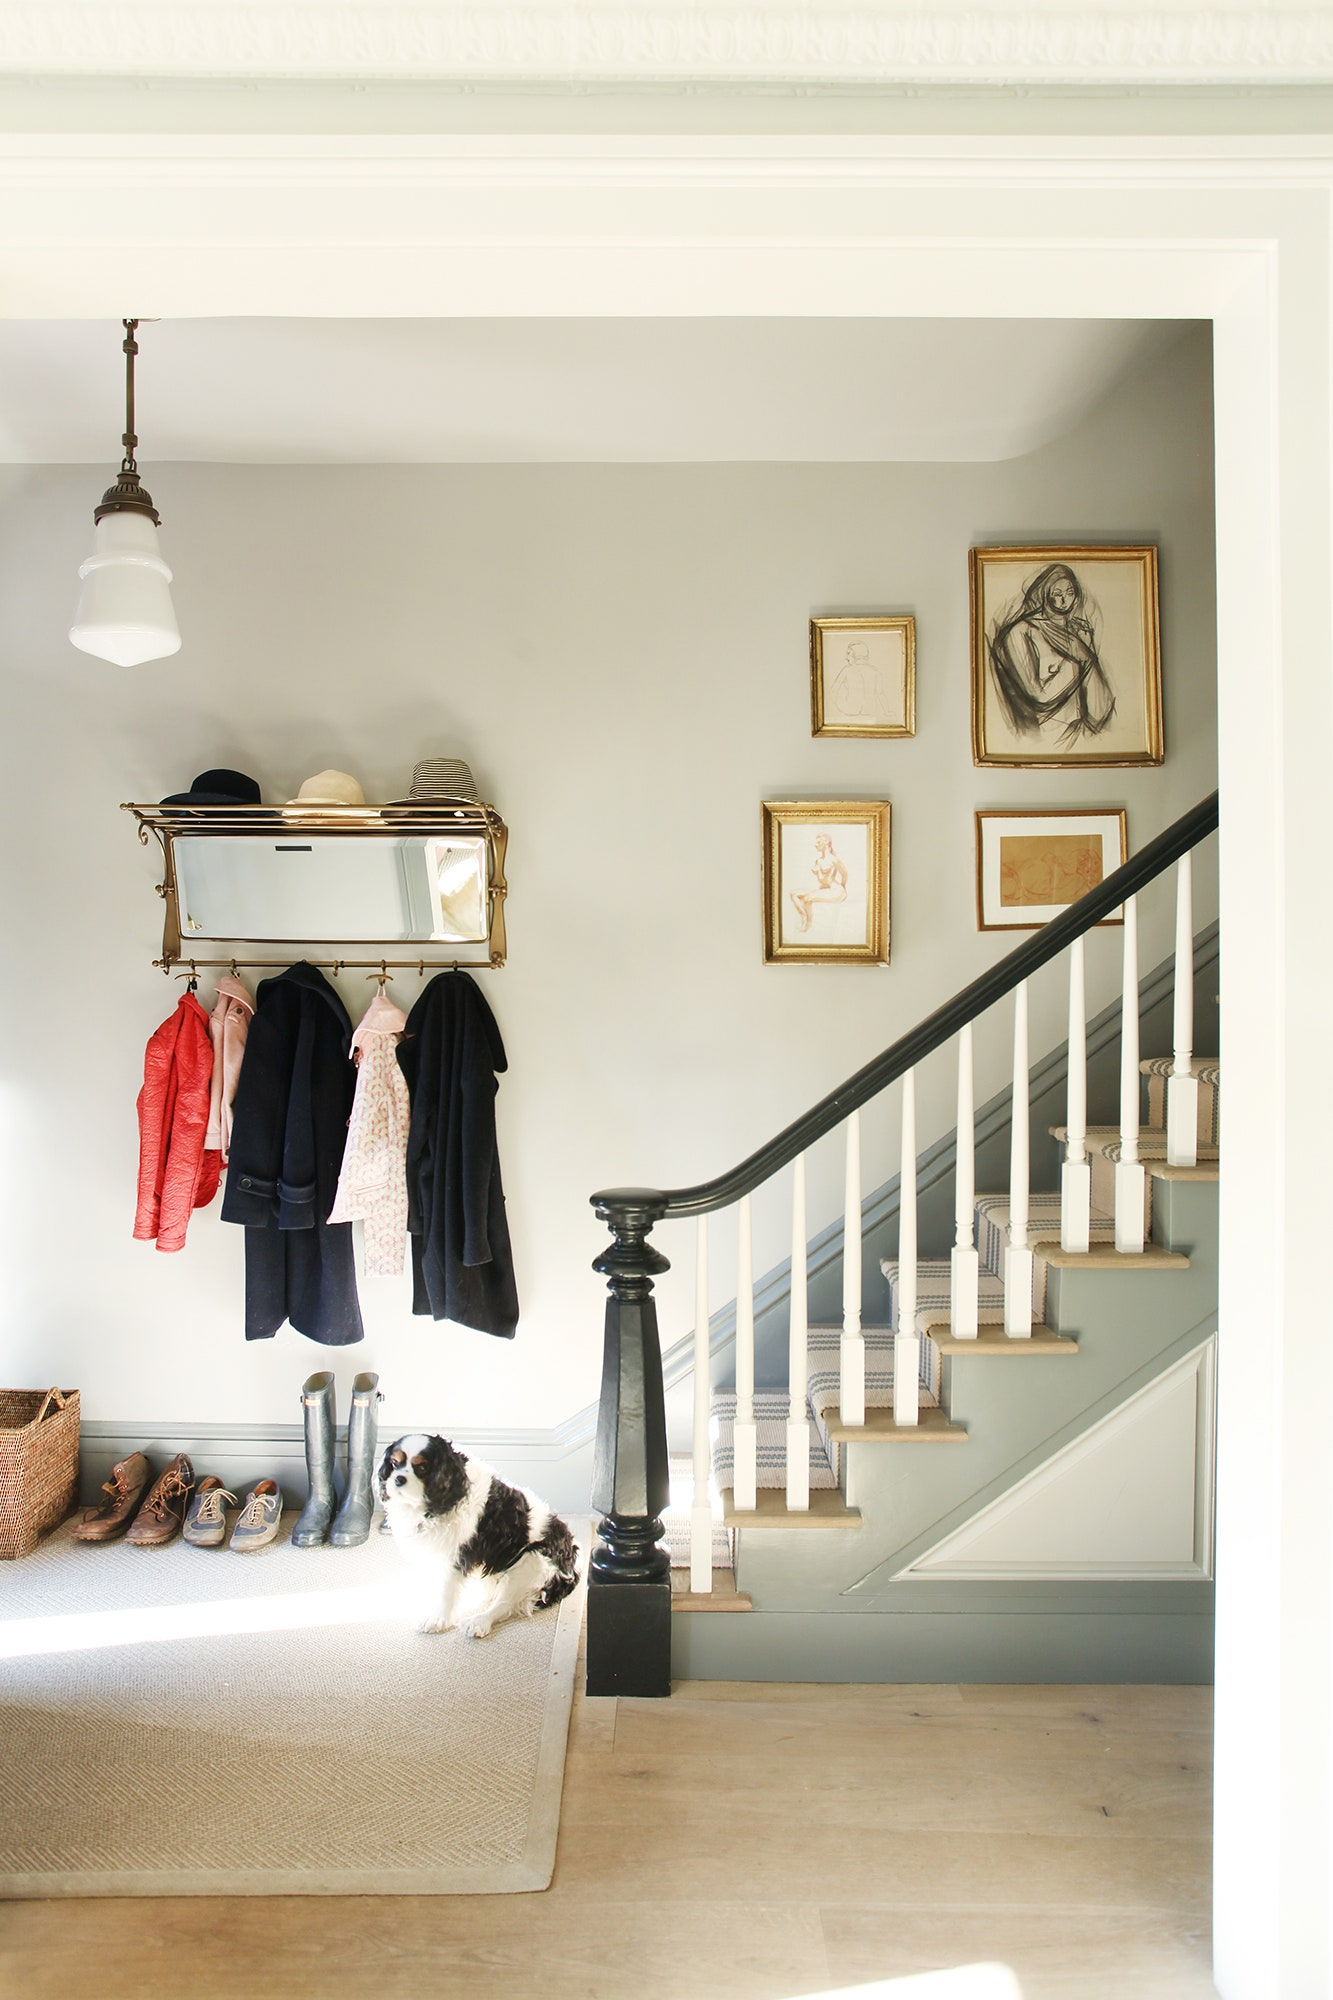 Décor Inspiration | At Home With: Interior Designer Jenny Wolf, Cobble Hill, Brooklyn